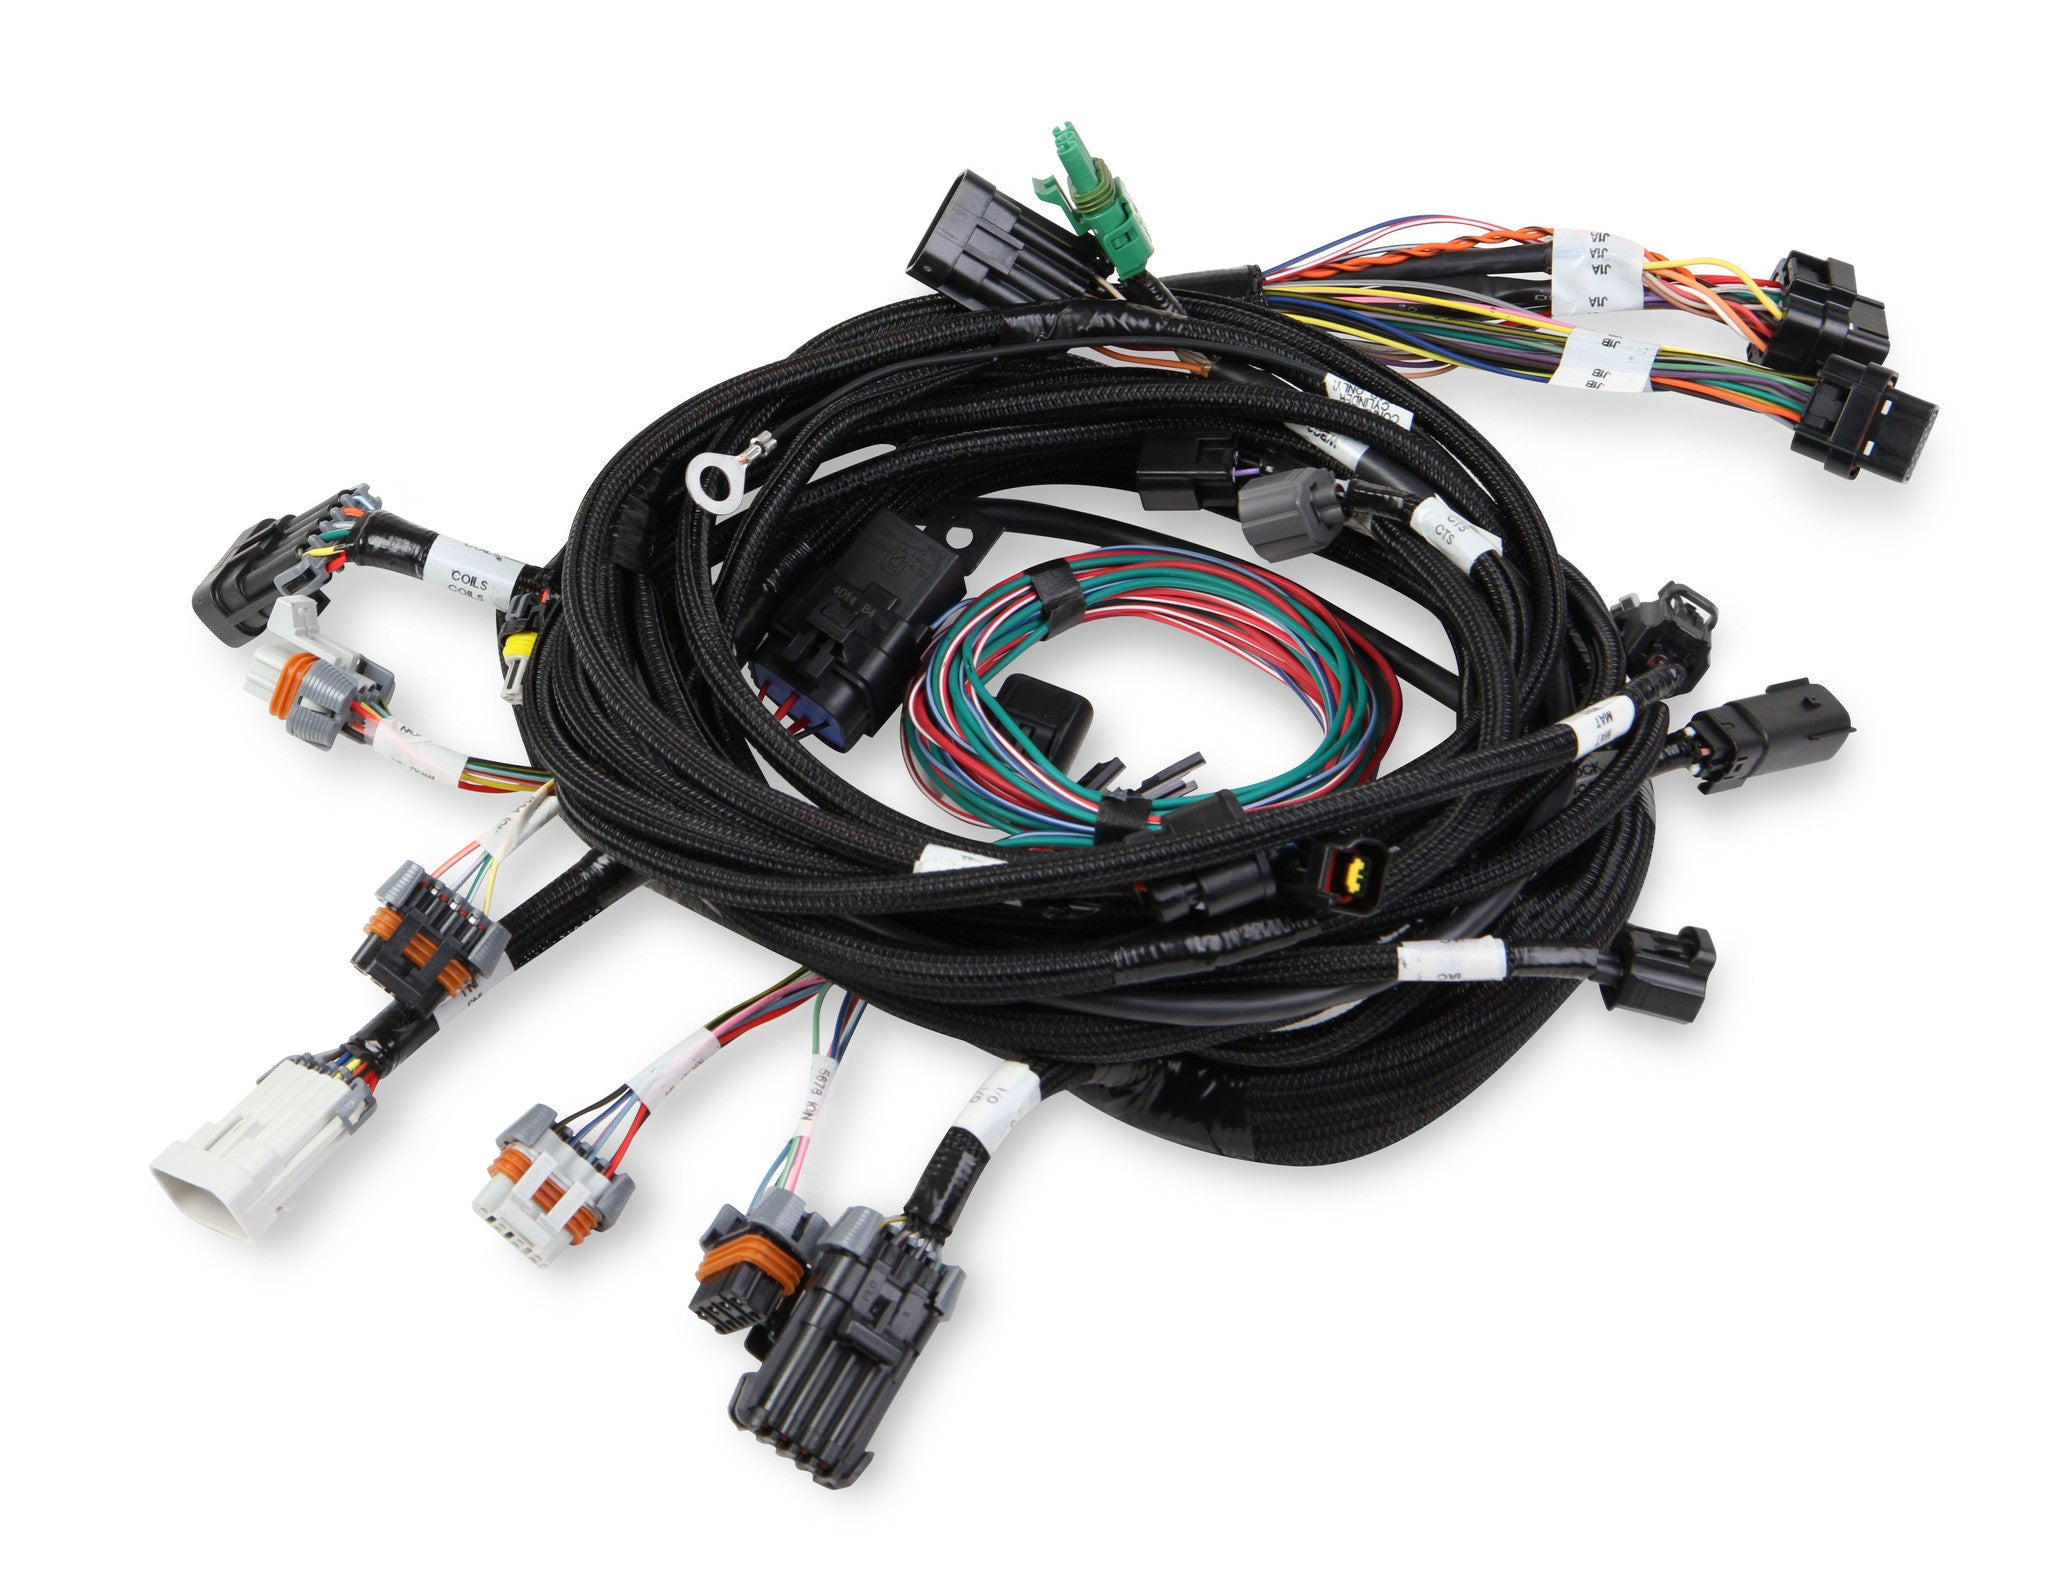 ford 302 wiring harness standalone redline build a kit redline motorsports inc  redline motorsports inc